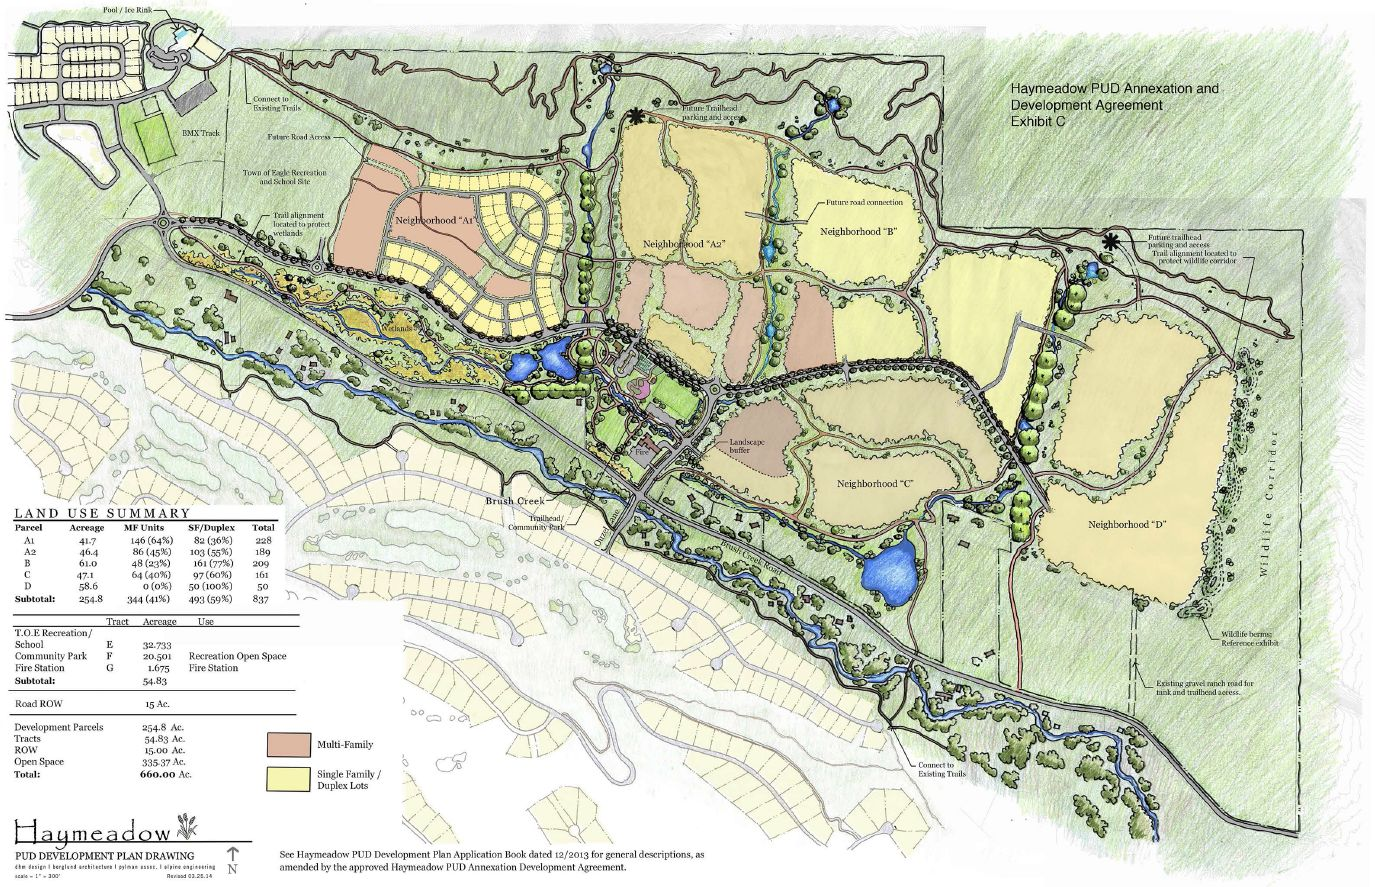 Haymeadow PUD Development Plan Drawing.jpg